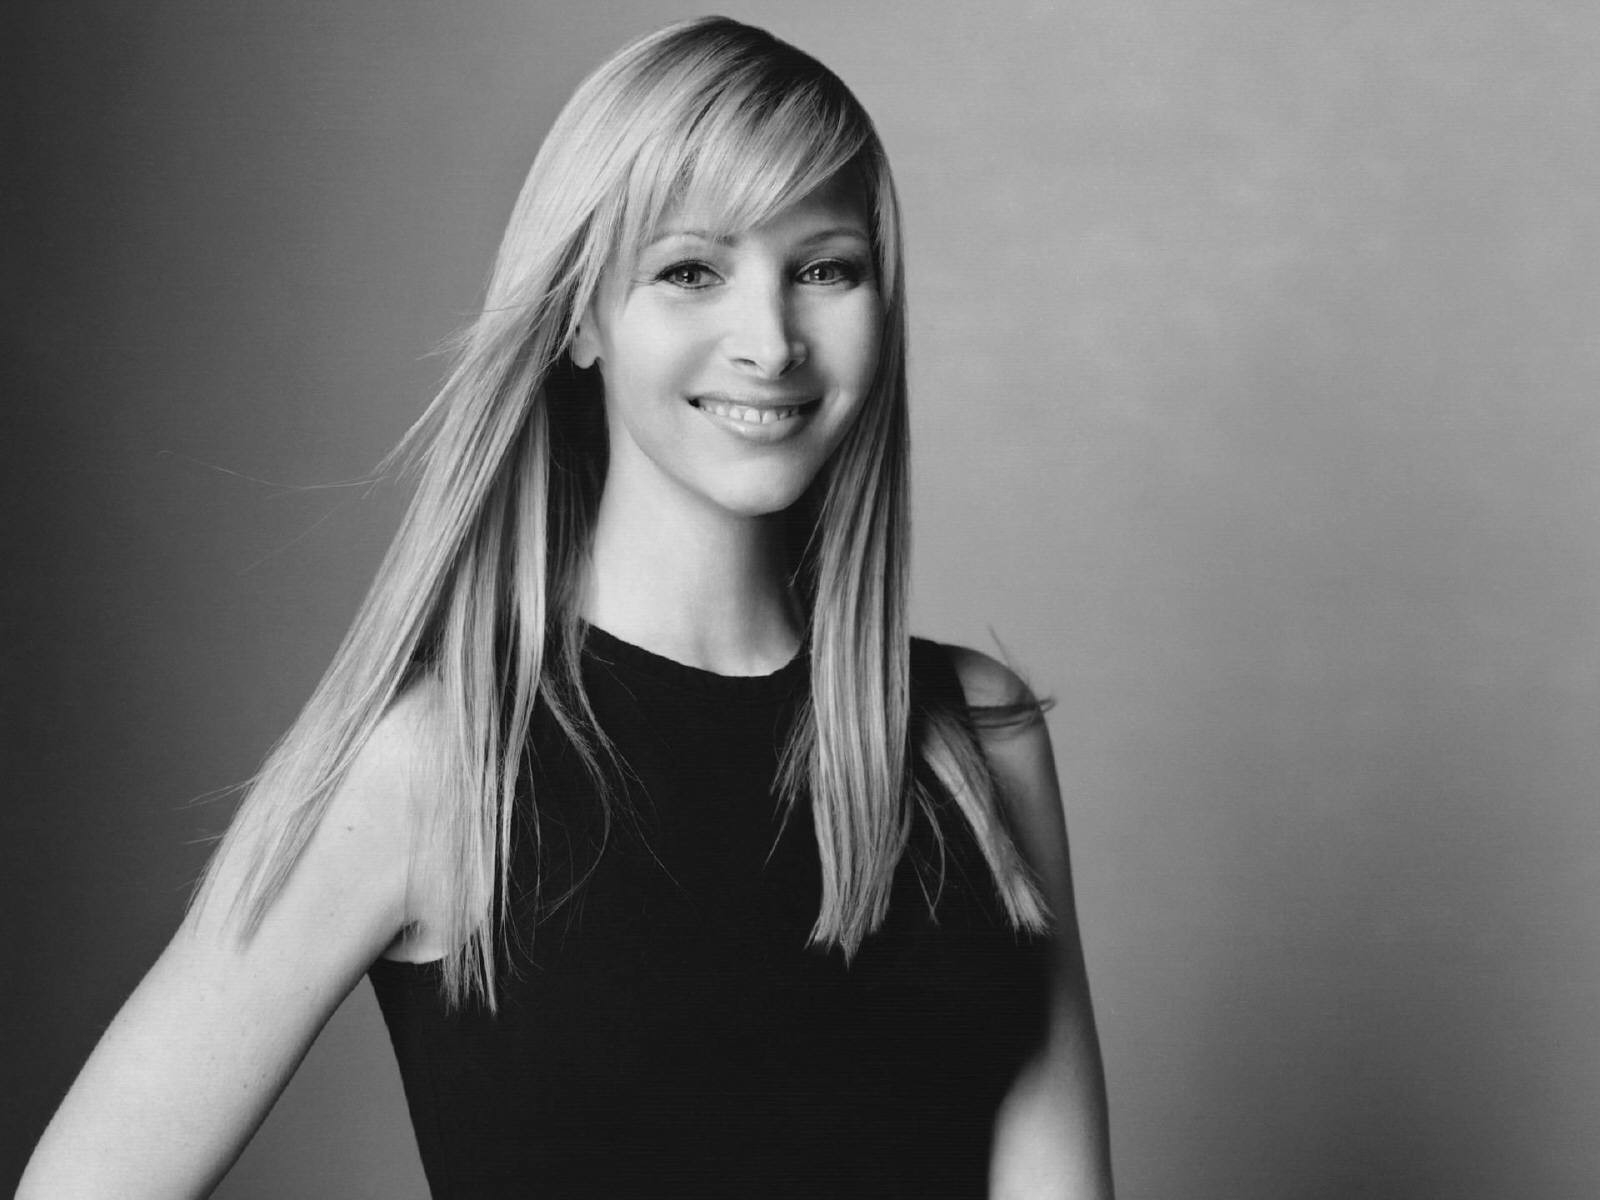 Wallpaper di Lisa Kudrow